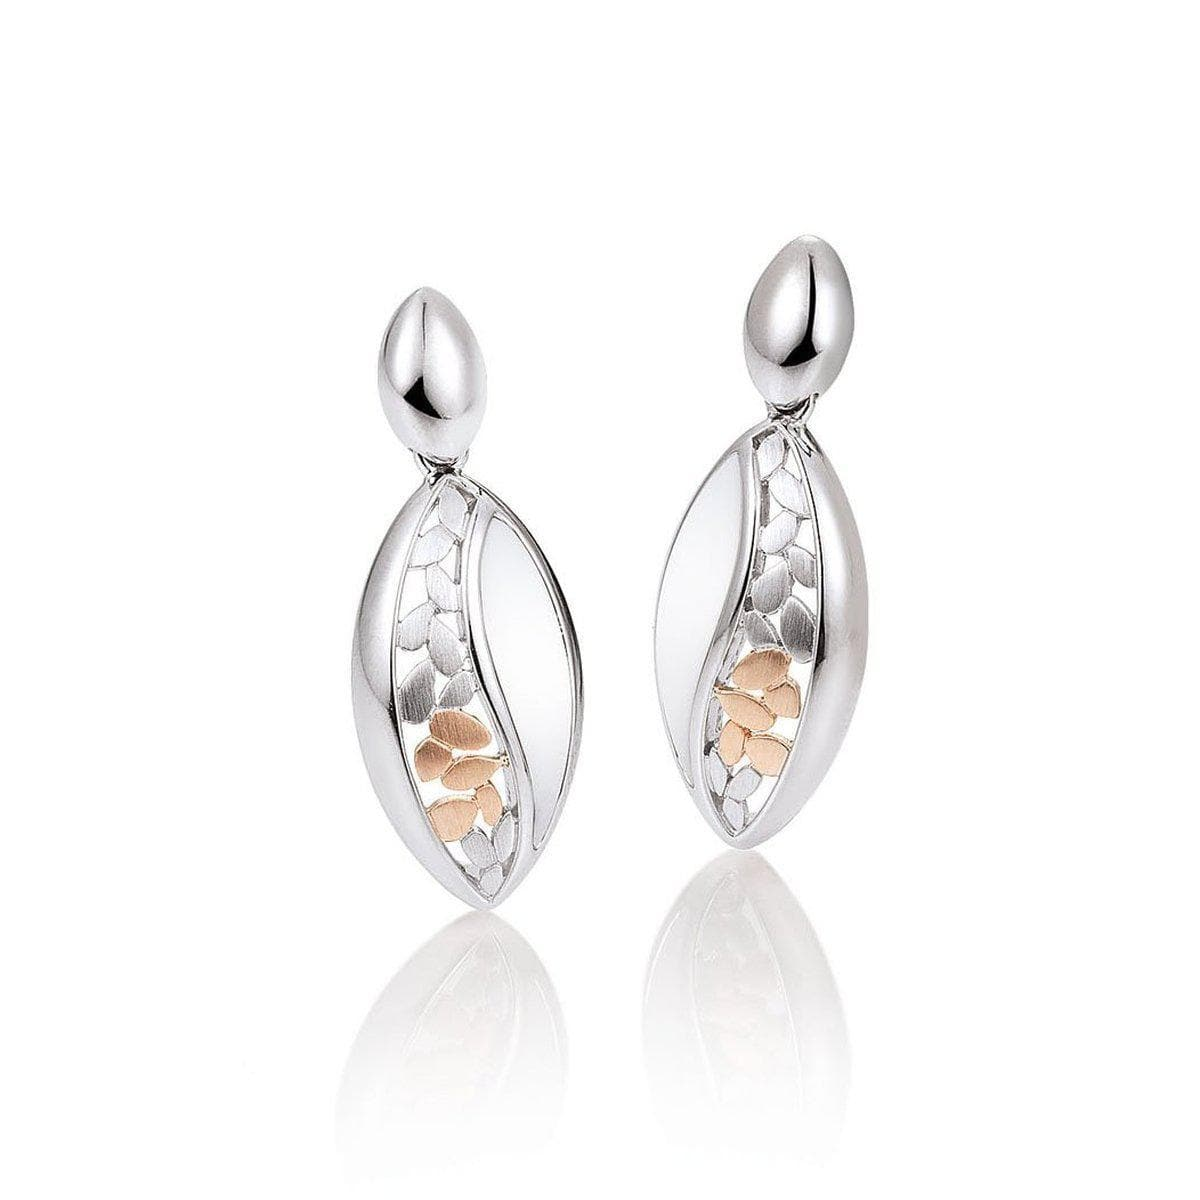 Rose Gold & Rhodium Plated Sterling Silver Earrings - 12/01996-Breuning-Renee Taylor Gallery